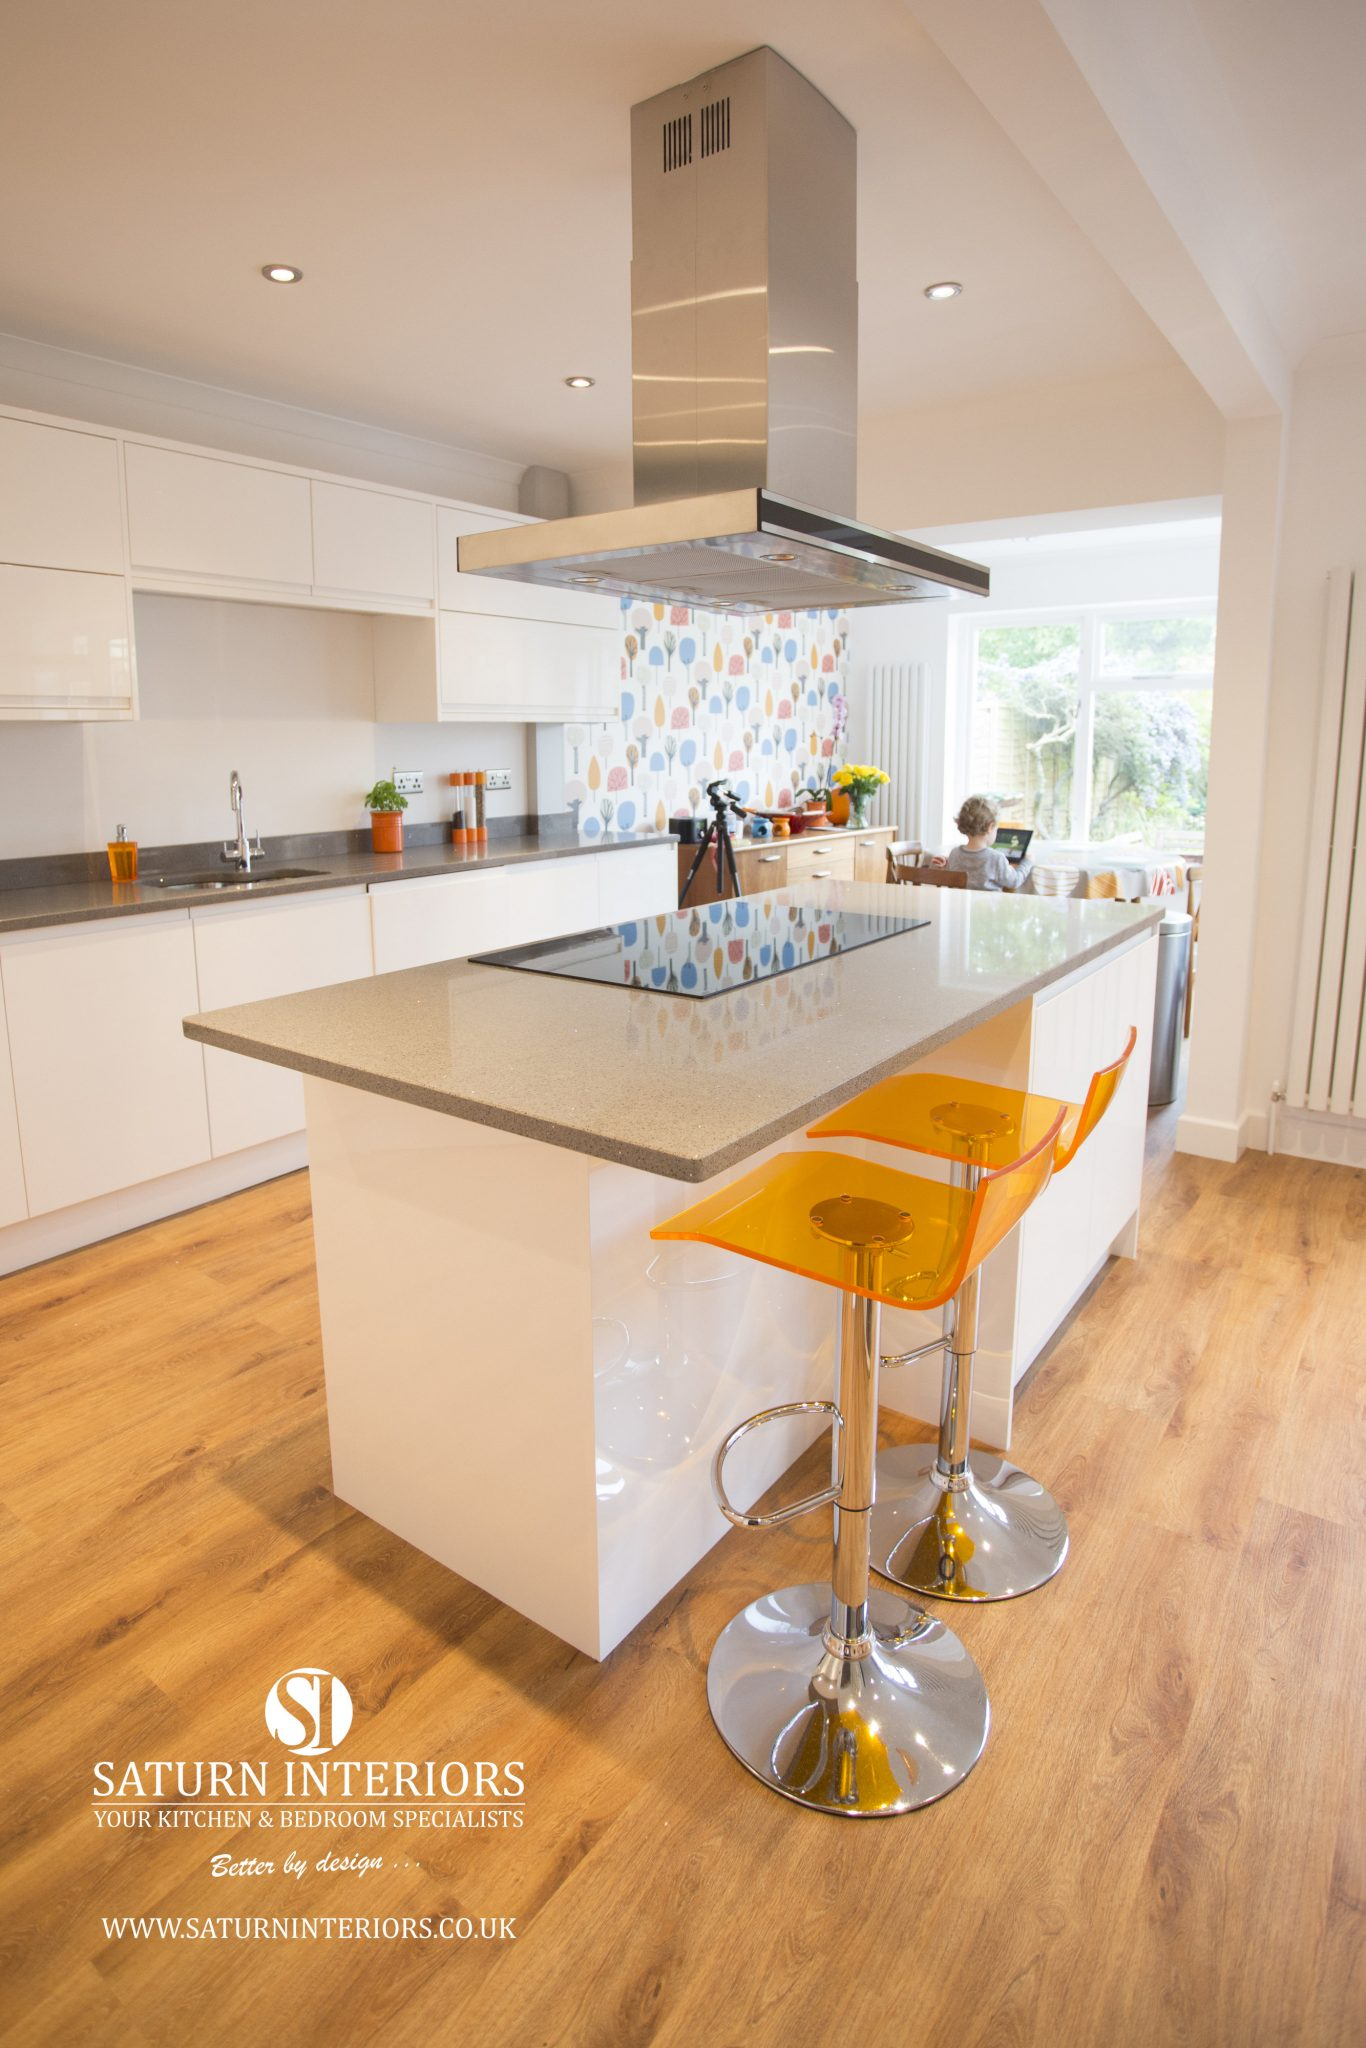 image of white kitchen units with grey worktop and wooden flooring